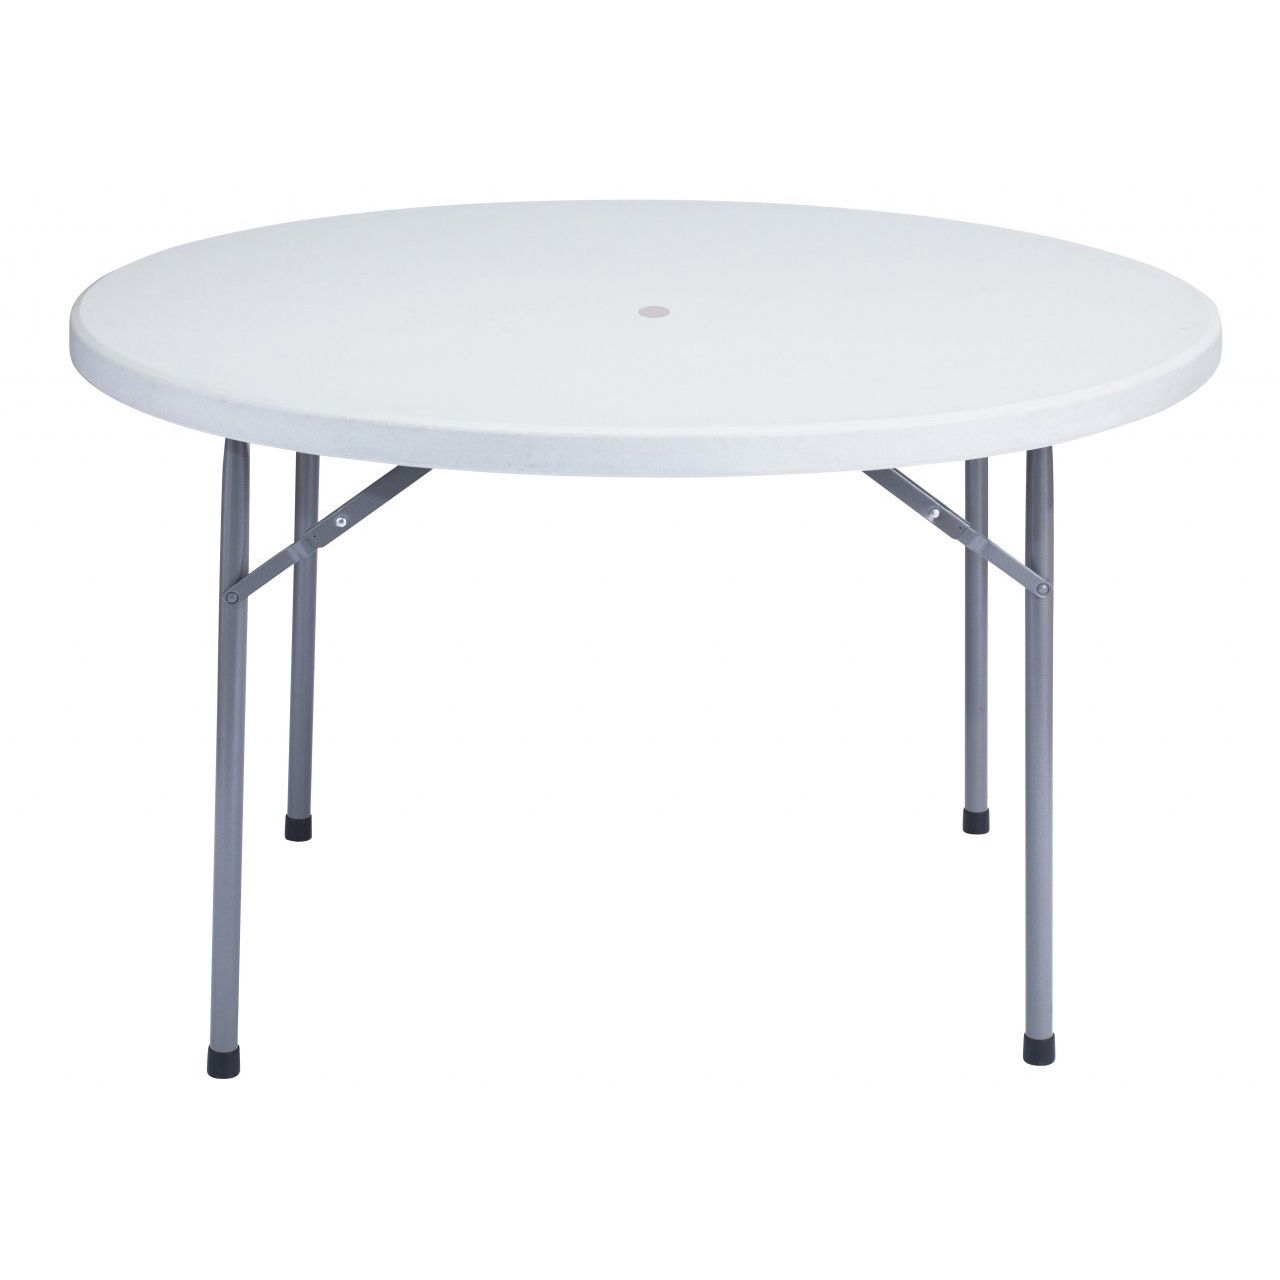 48 Round Plastic Folding Table With Umbrella Hole Classic